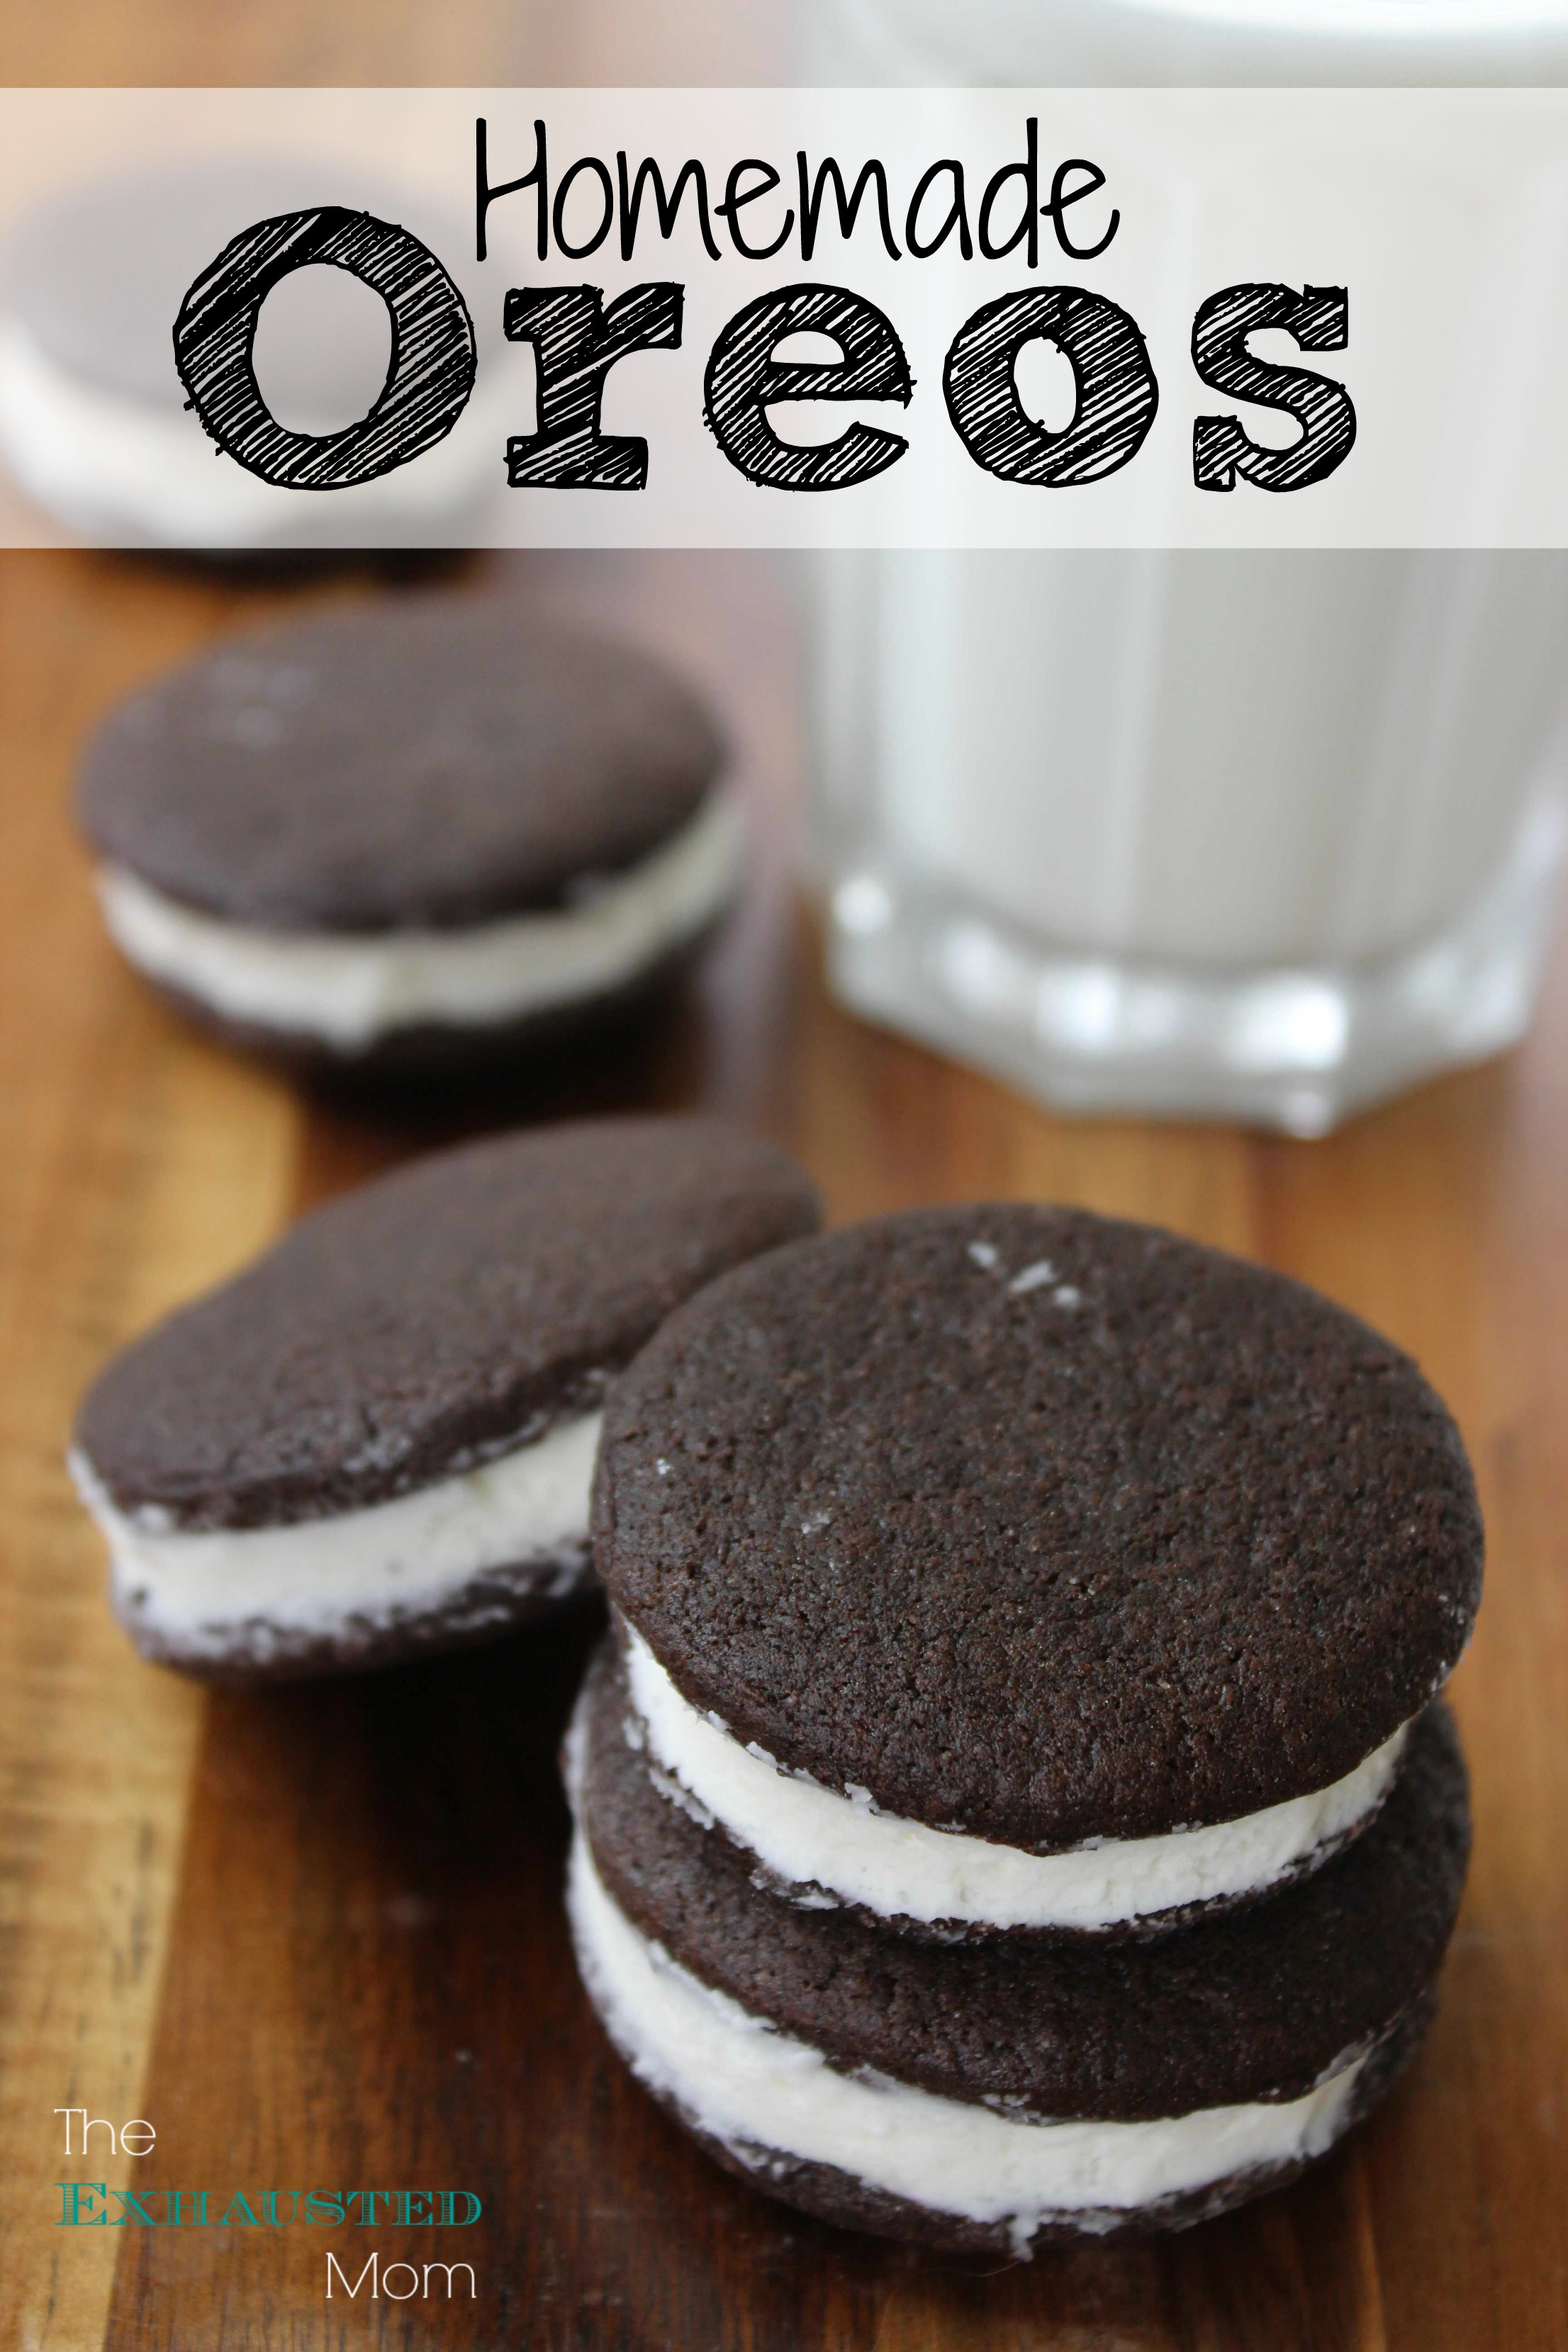 Homemade Oreos - The Exhausted Mom